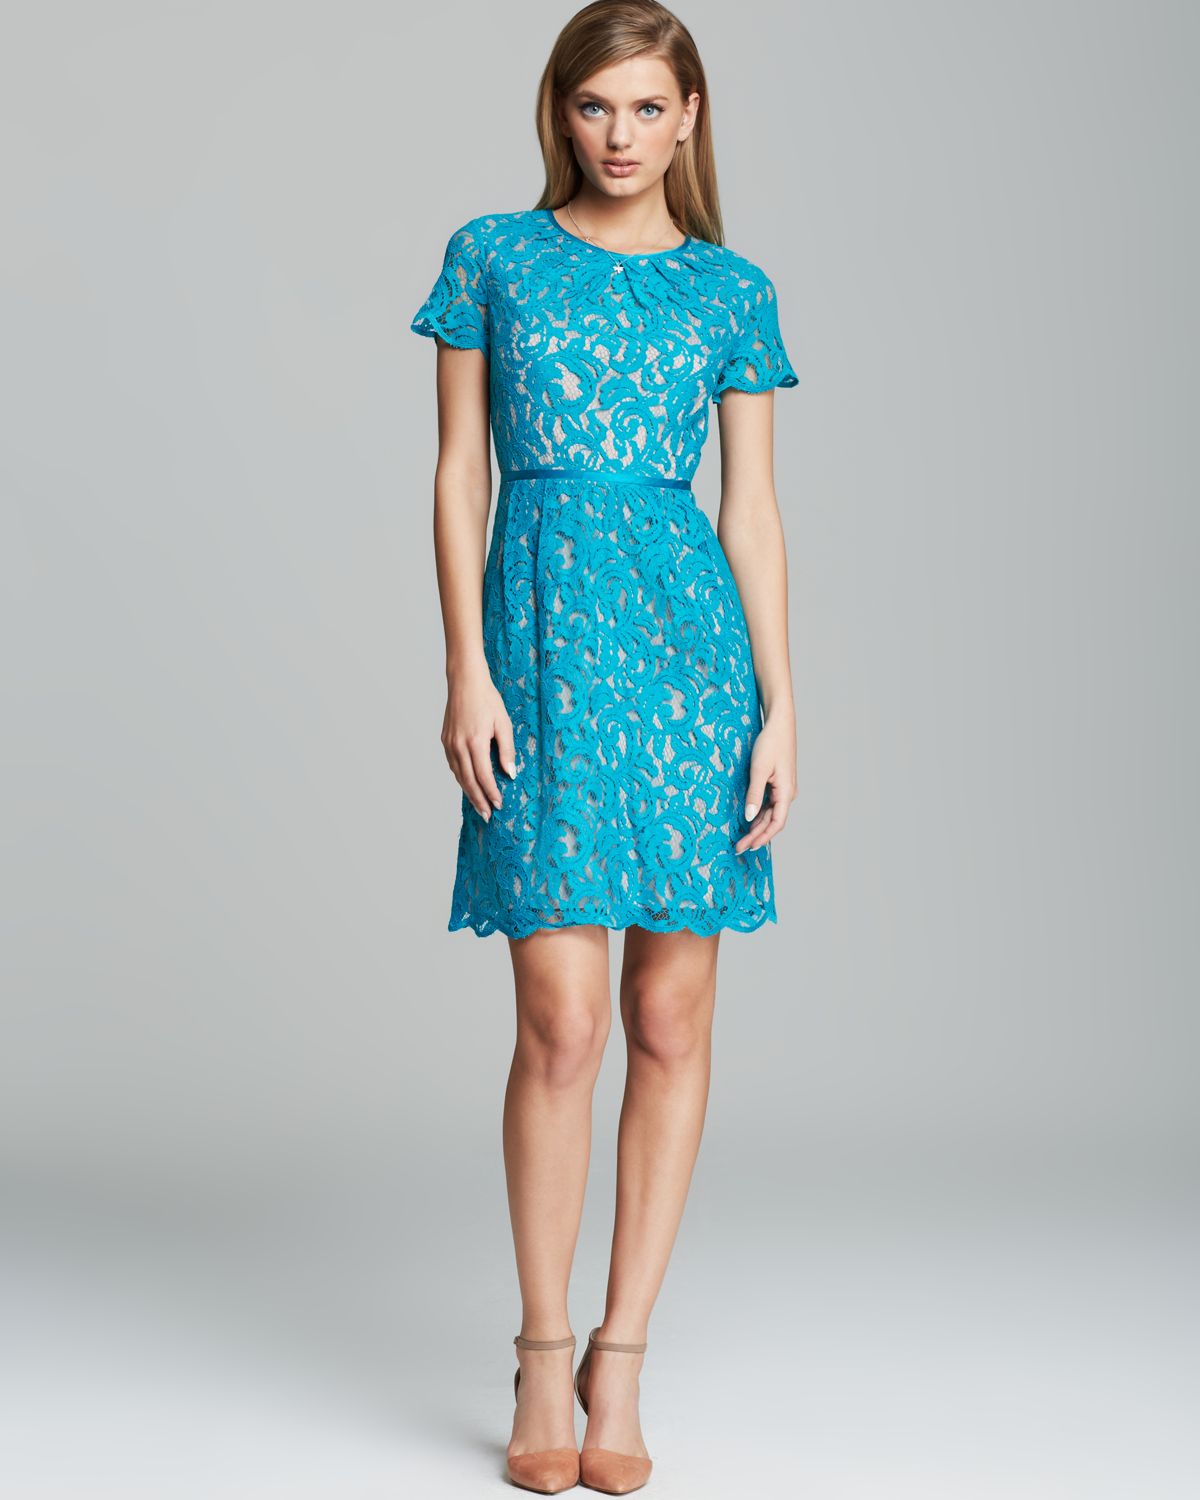 Lyst Adrianna Papell Dress Short Sleeve Lace Fit And